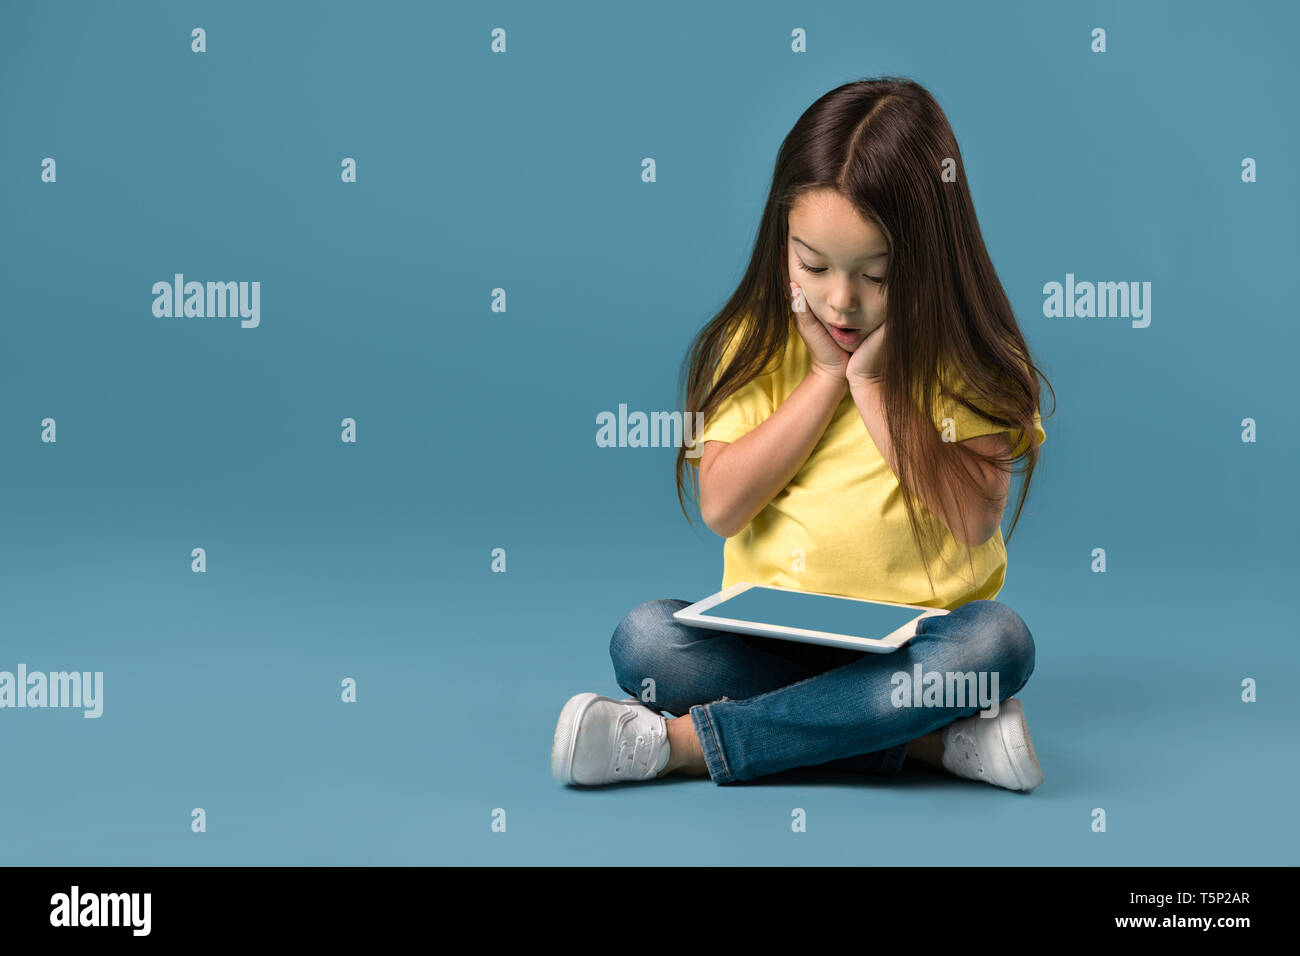 surprised cute little child girl holding blank tablet computer on blue background Stock Photo